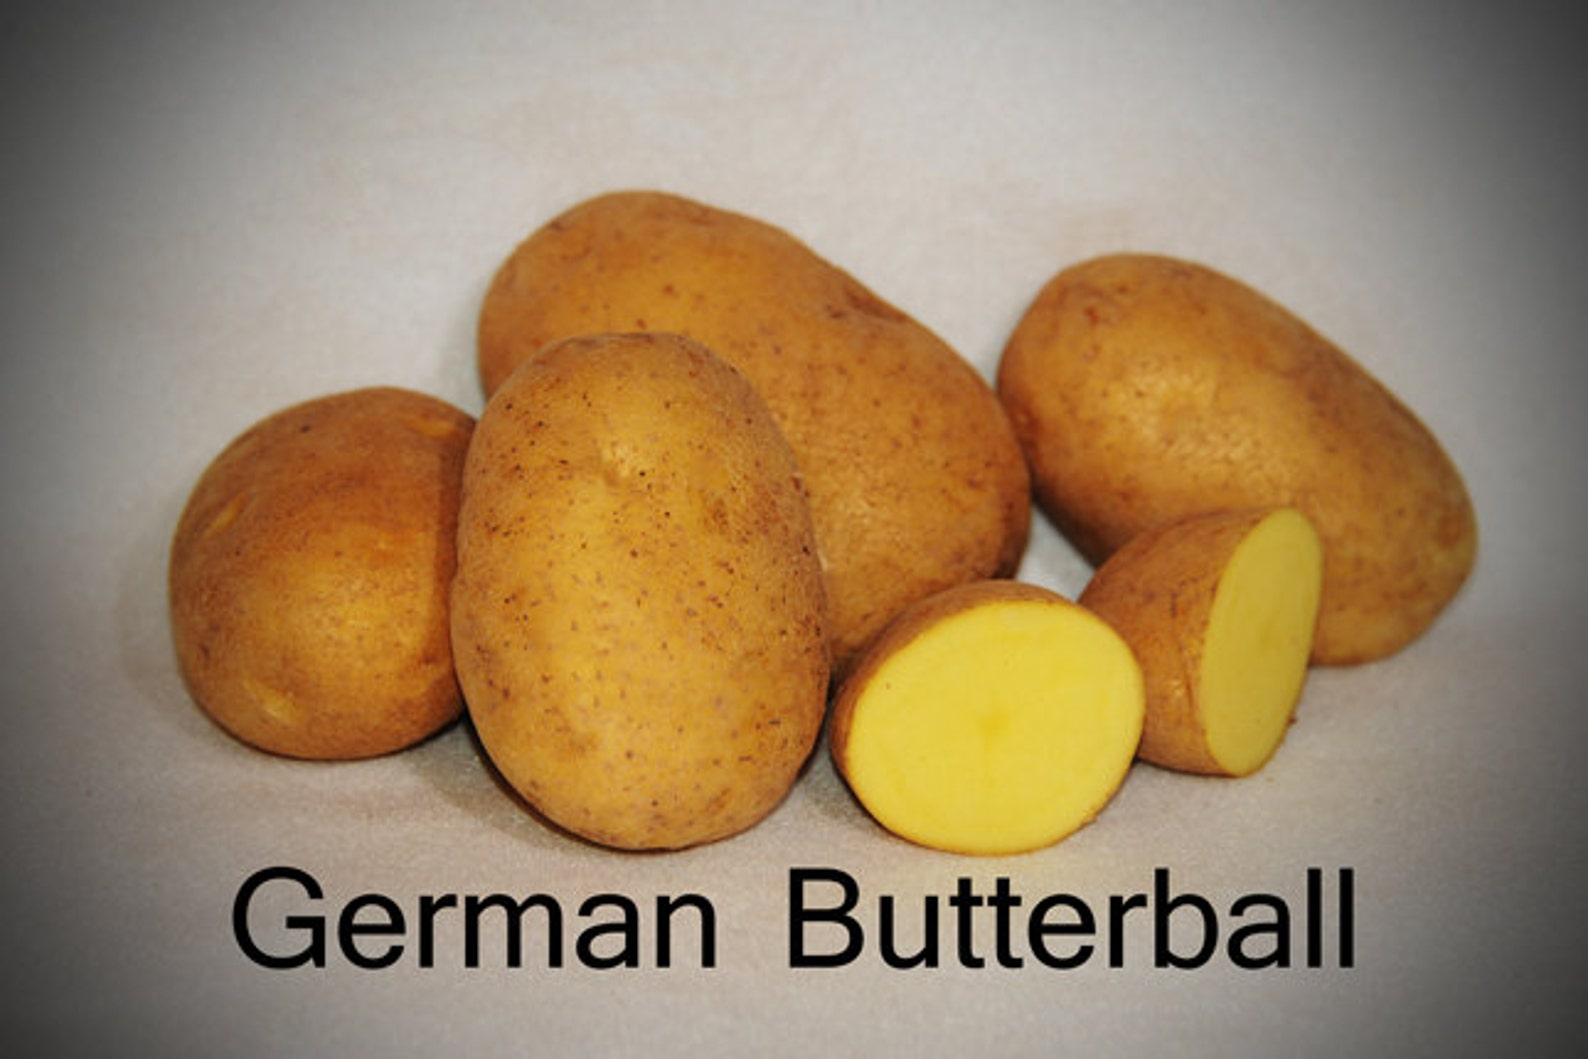 Potato, German Butterball Netted, golden yellow skin and yellow flesh. ,Speciality Potato, Excellent yields and flavor. Stores well.